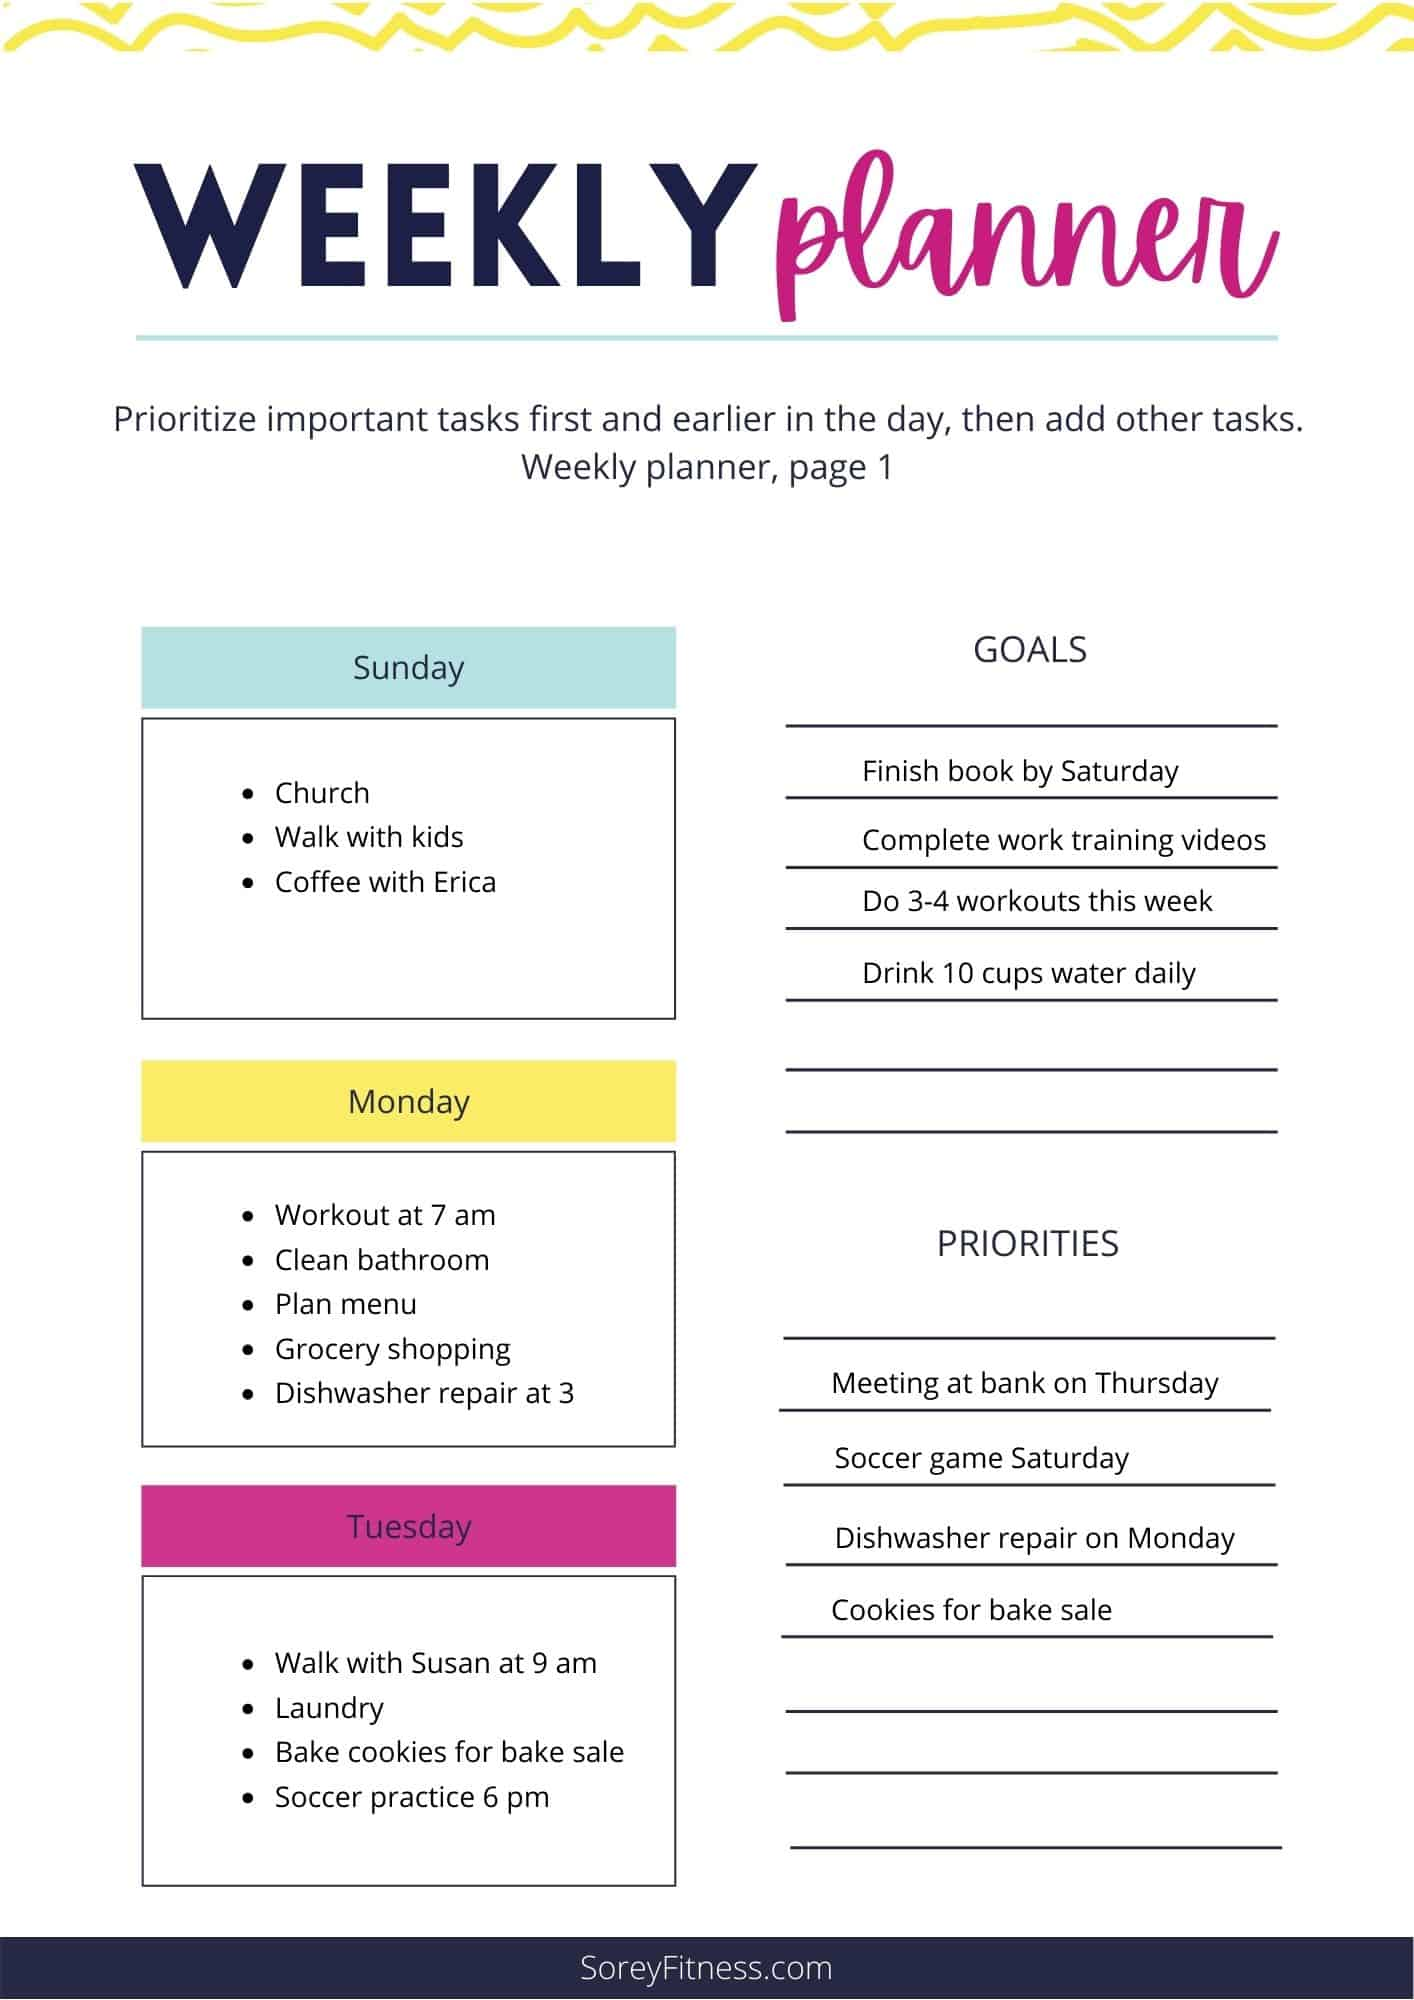 sample weekly routine on a weekly planner page